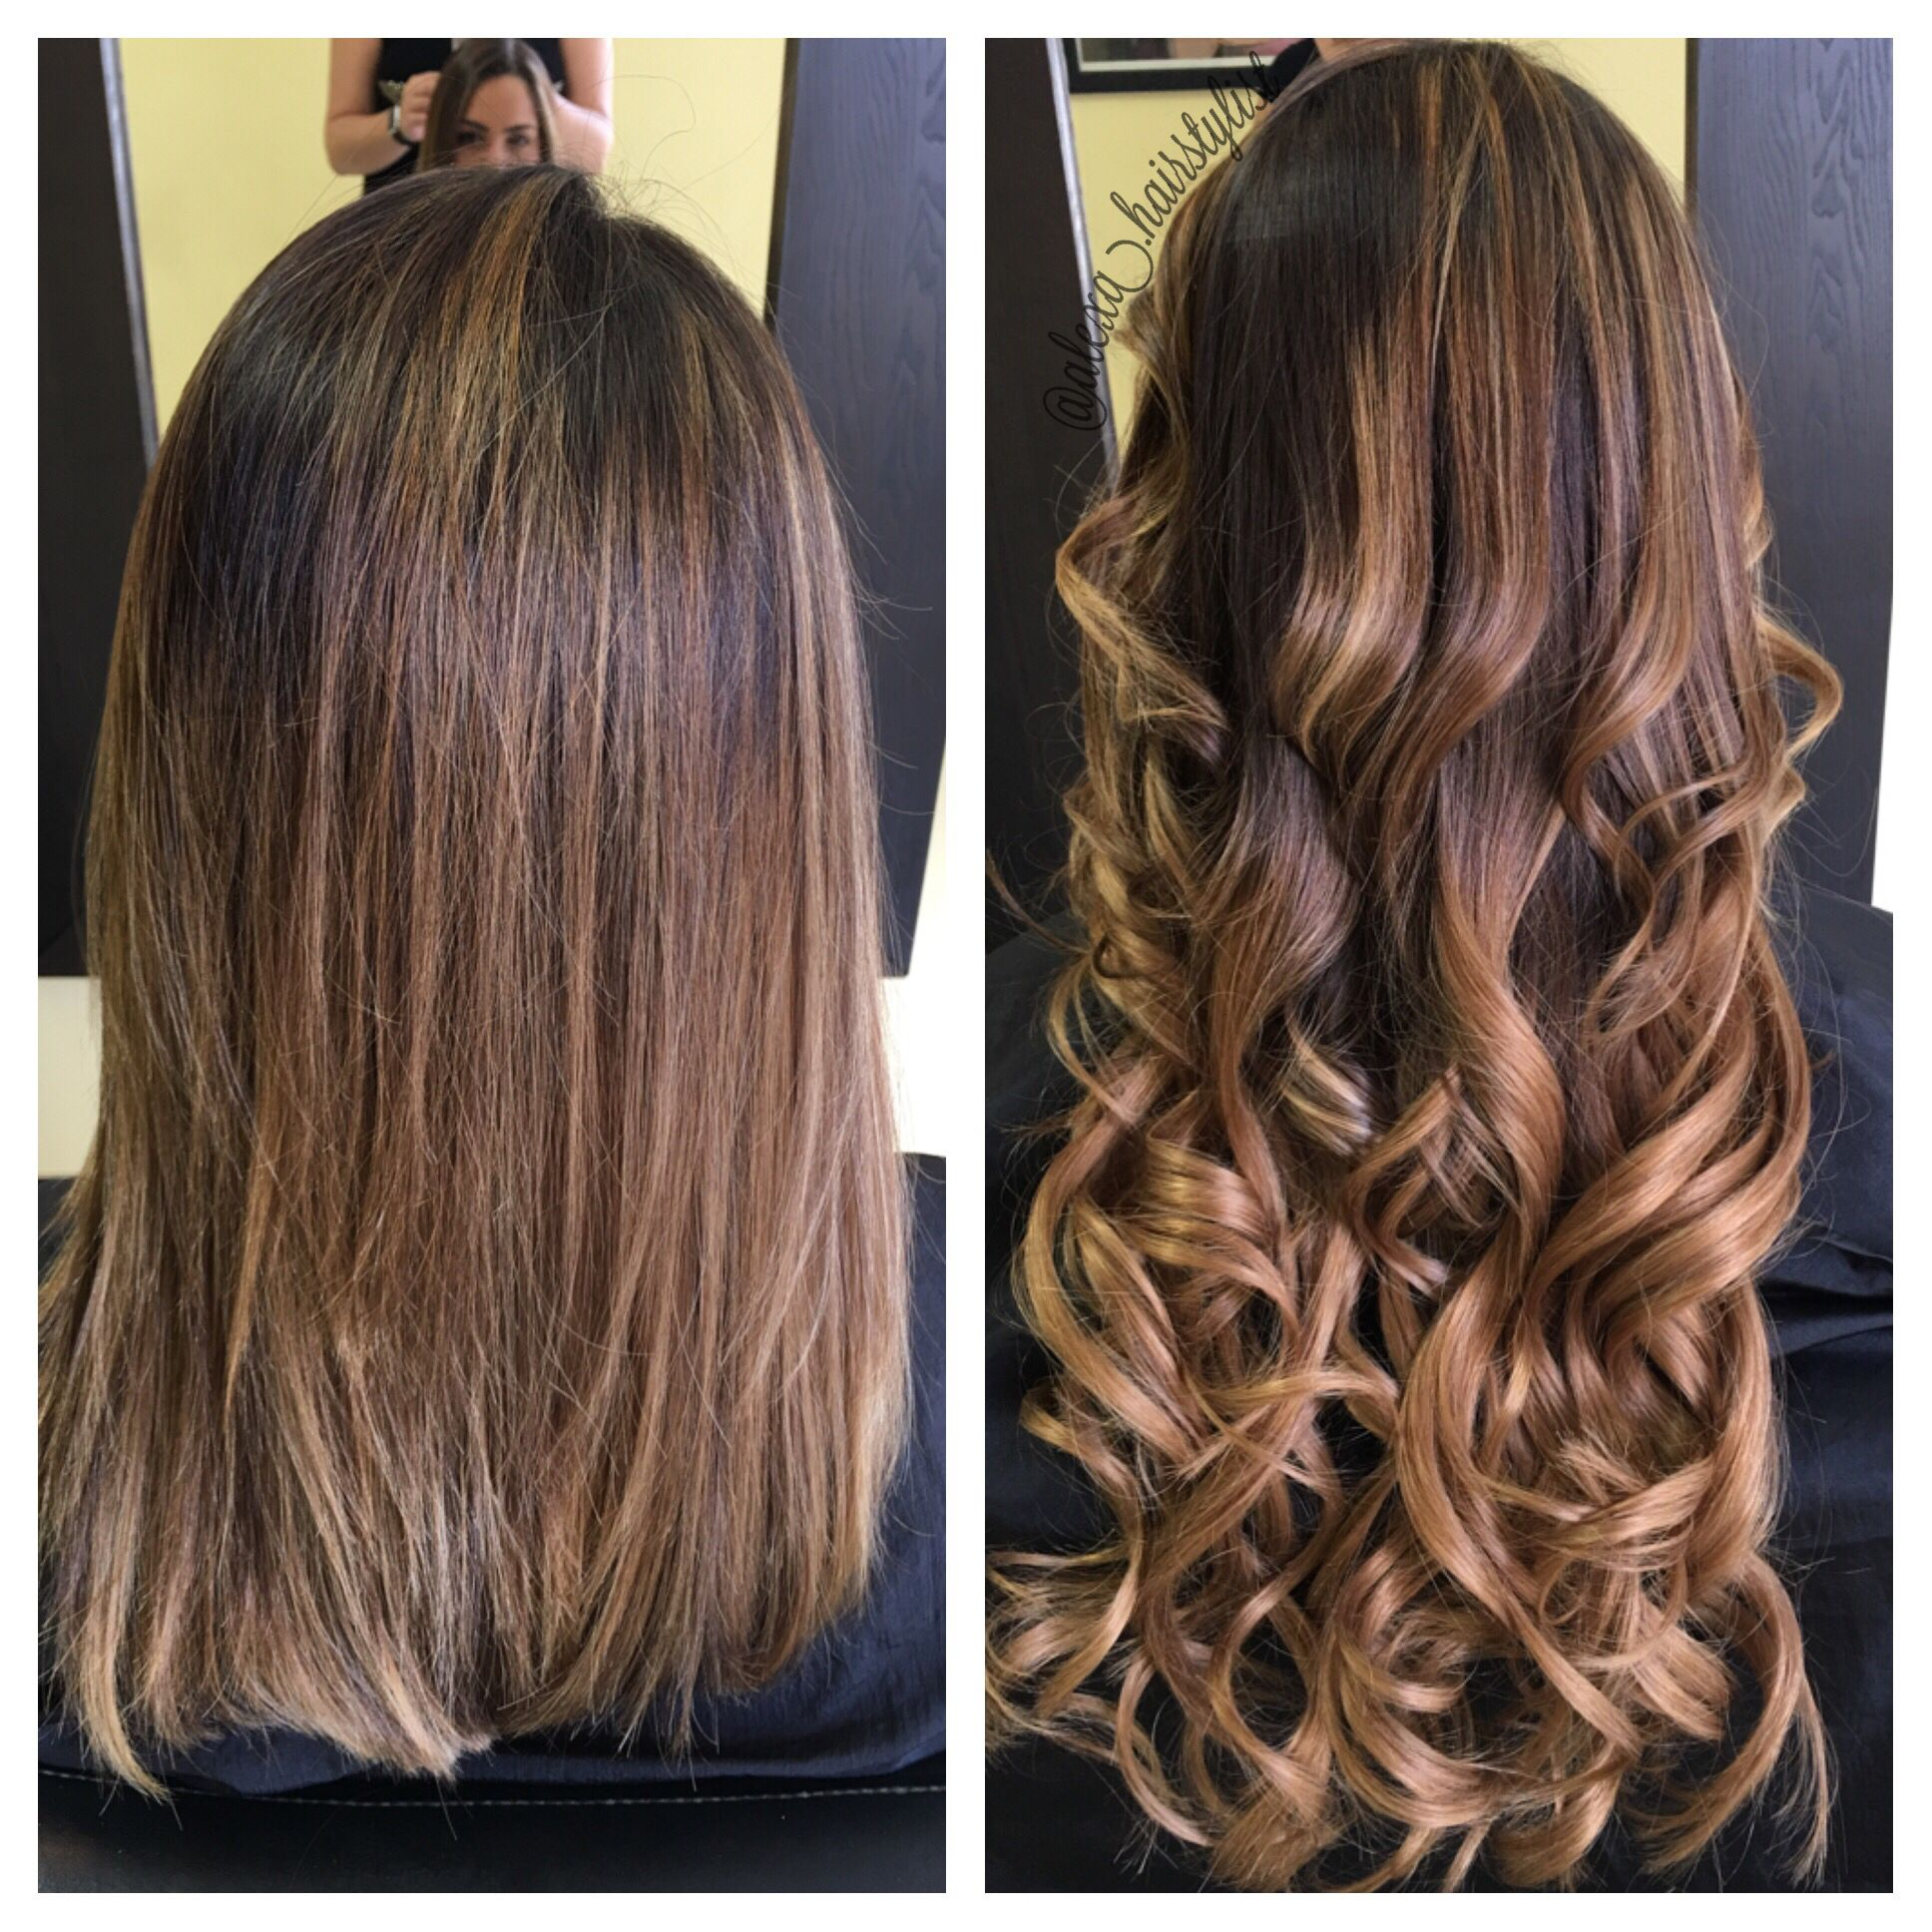 Before And After Tape In Extensions 20 22 Inches Hair